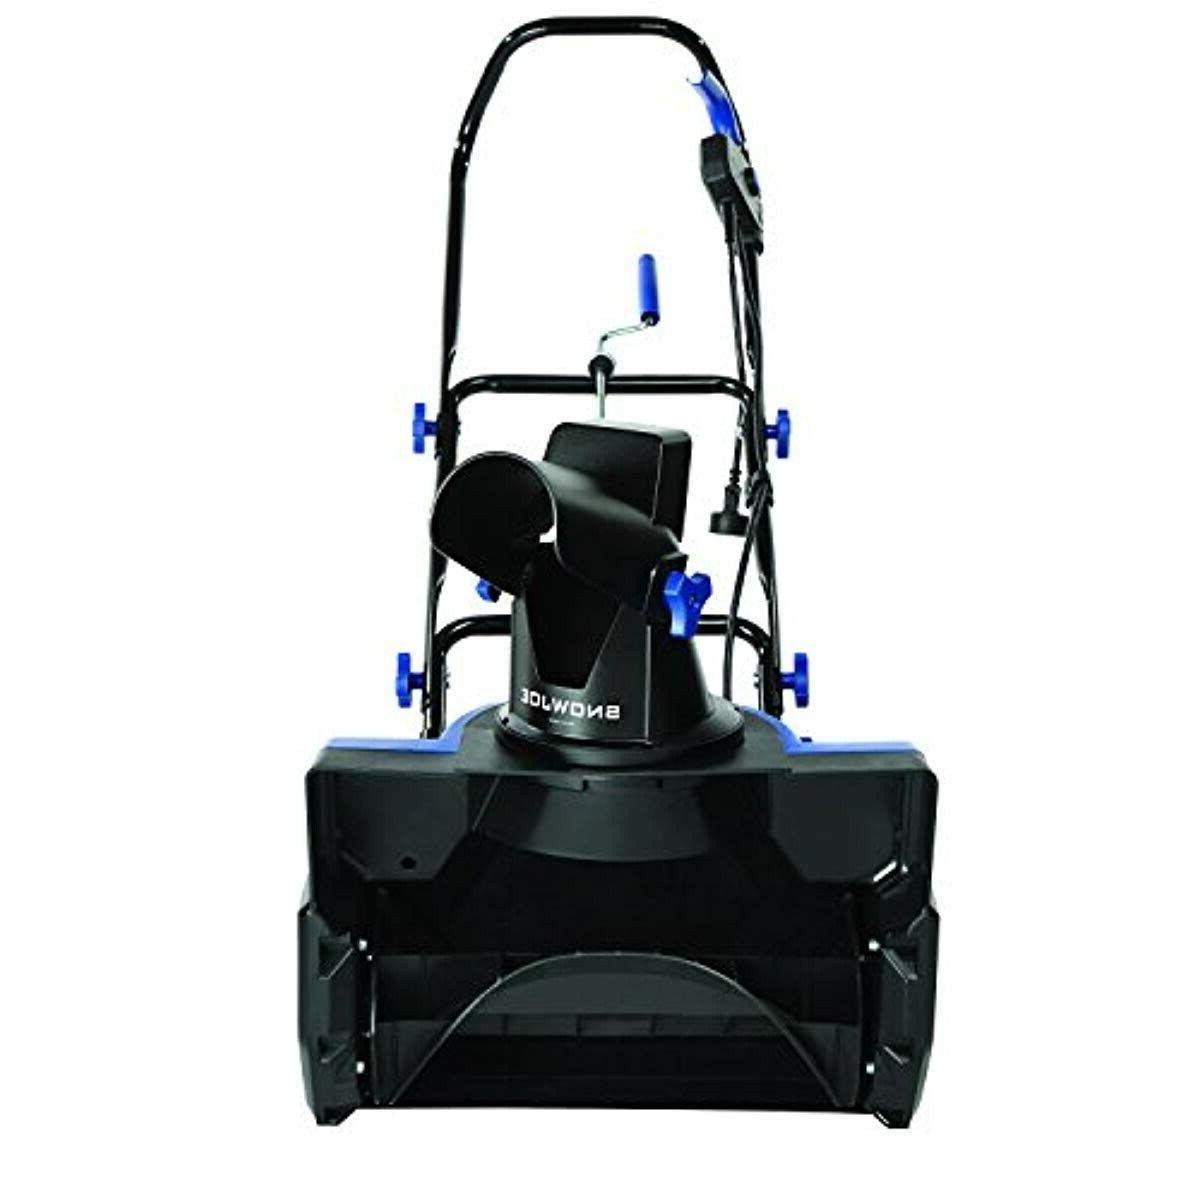 Snow 18-Inch Electric Snow Thrower